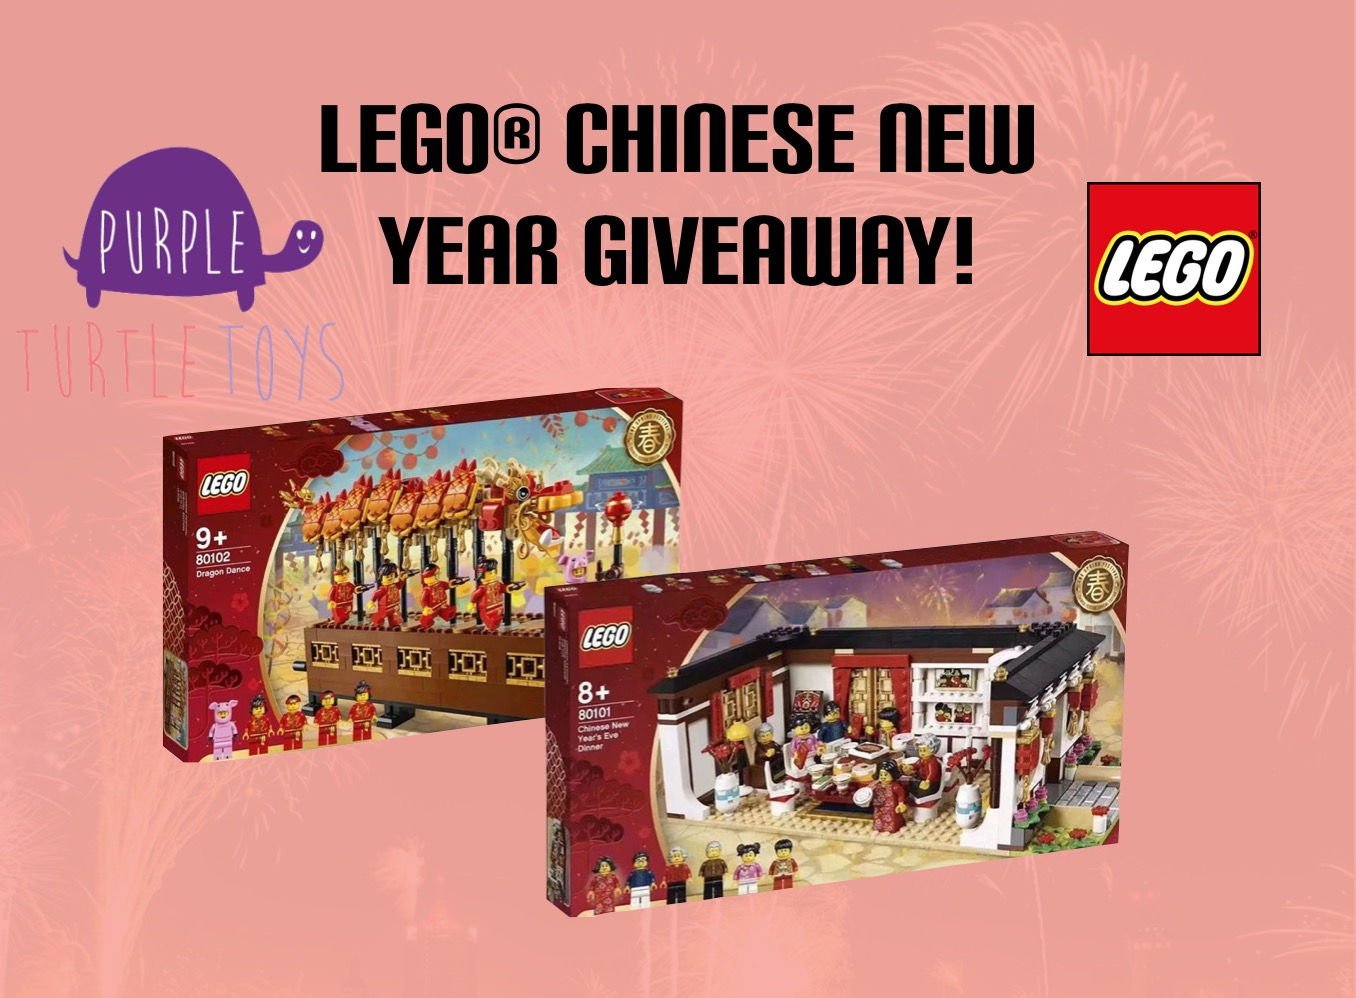 LEGO Chinese New Year Giveaway